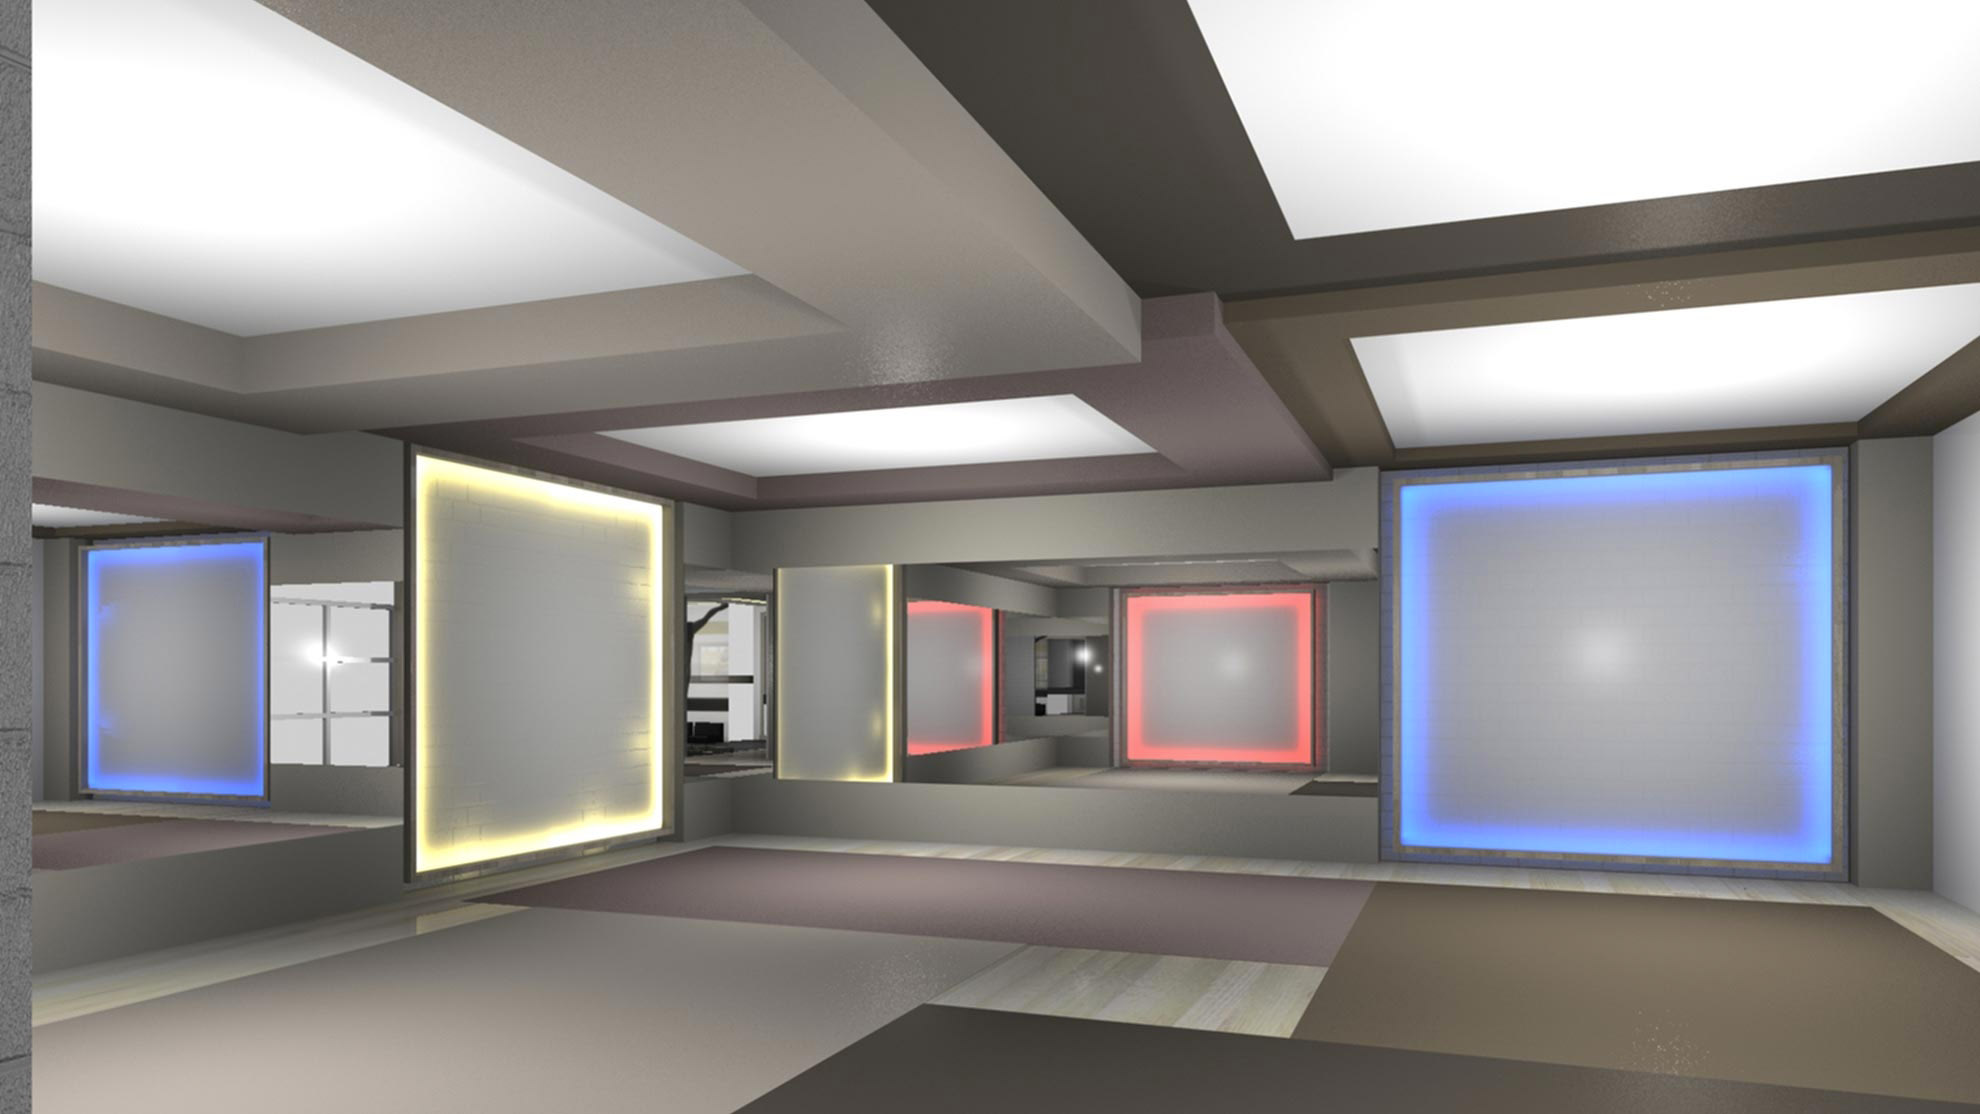 Designing gyms - Fitness Club E.P Jim 6